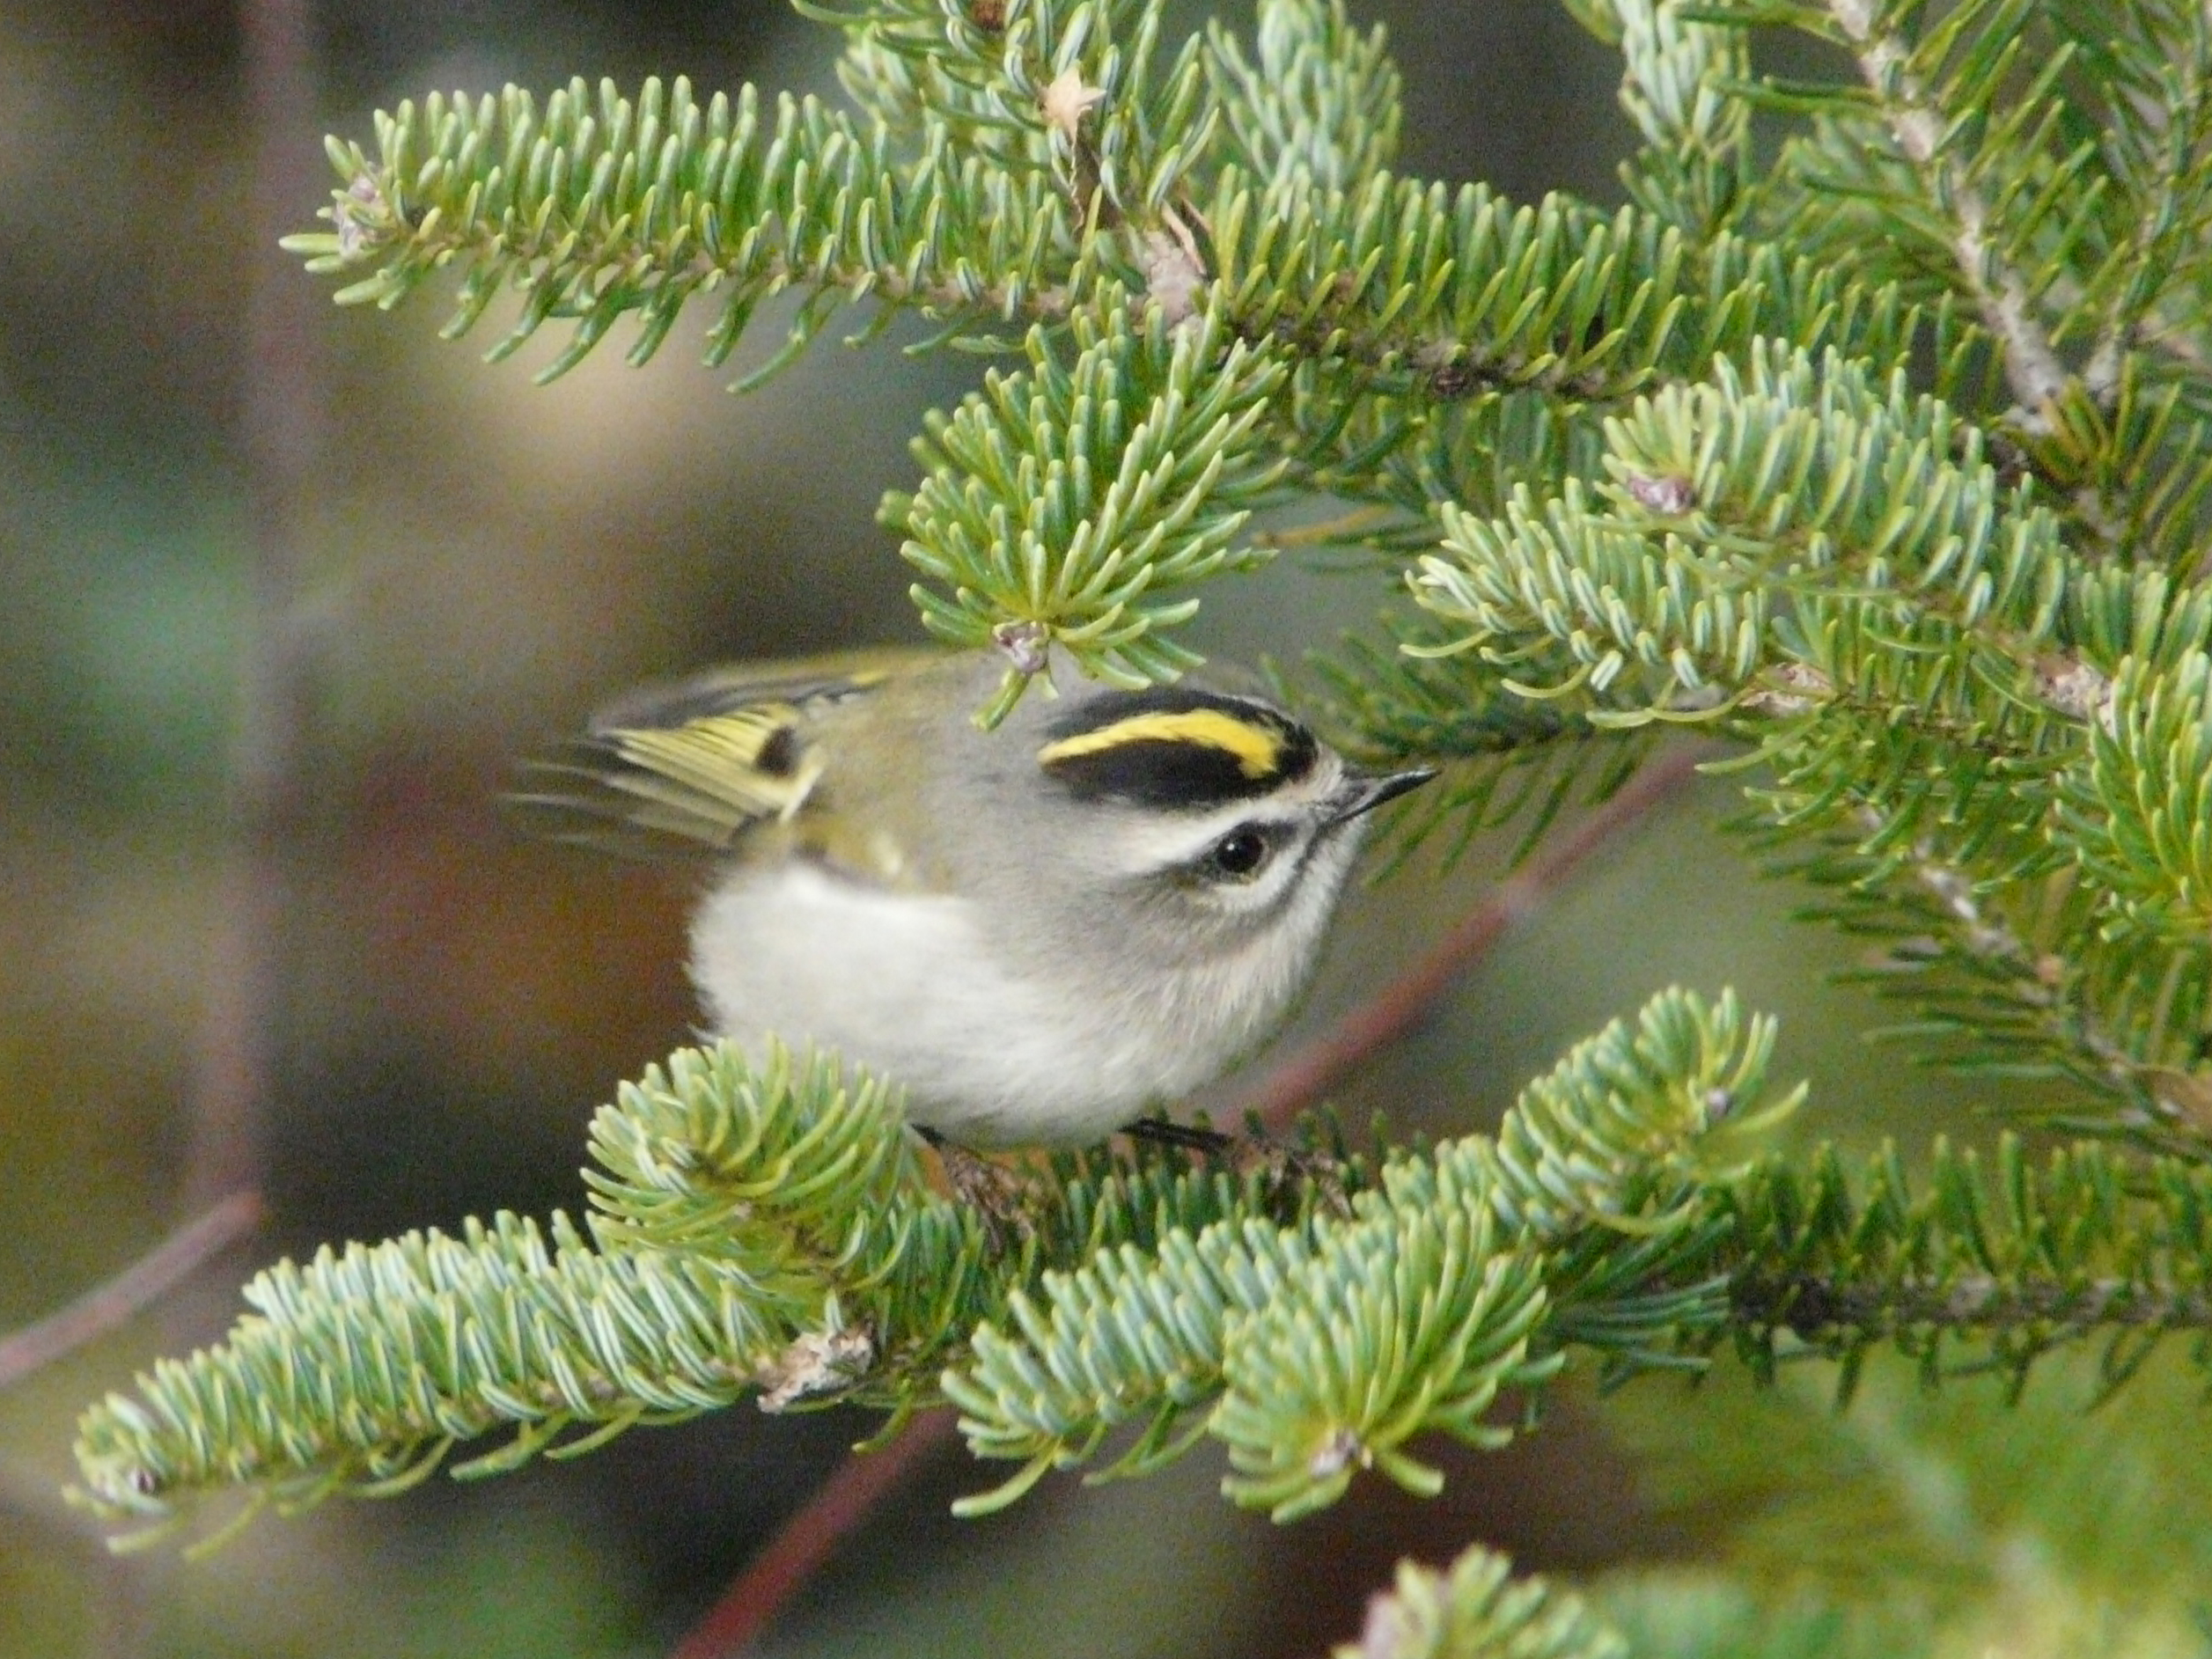 Golden-crowned kinglet, 24 Oct 2010 (©2010 Brian Willson)